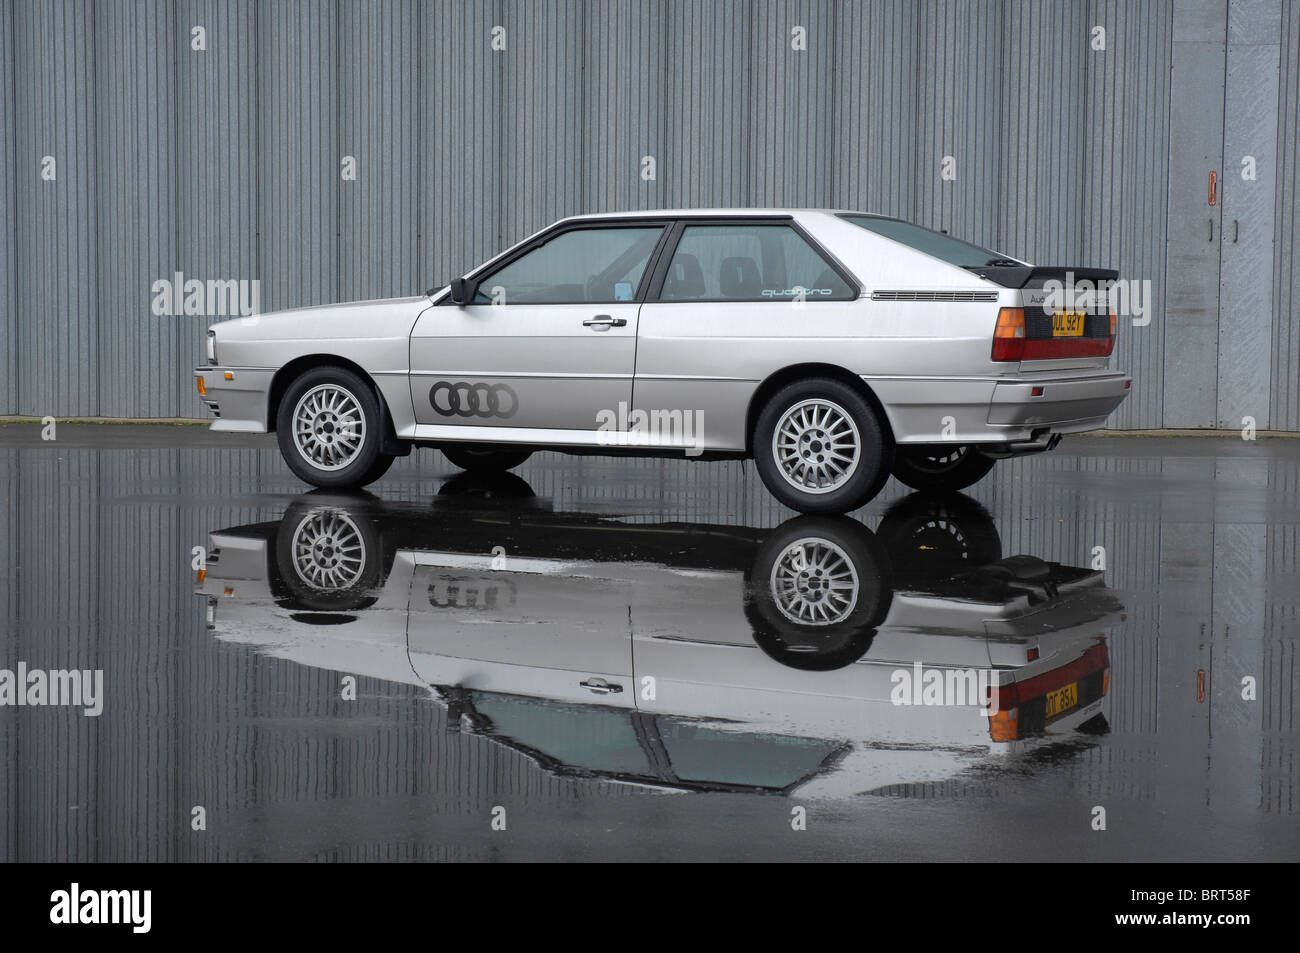 Audi Urquattro Innenausstattung Audi Coupe Stock Photos Audi Coupe Stock Images Alamy